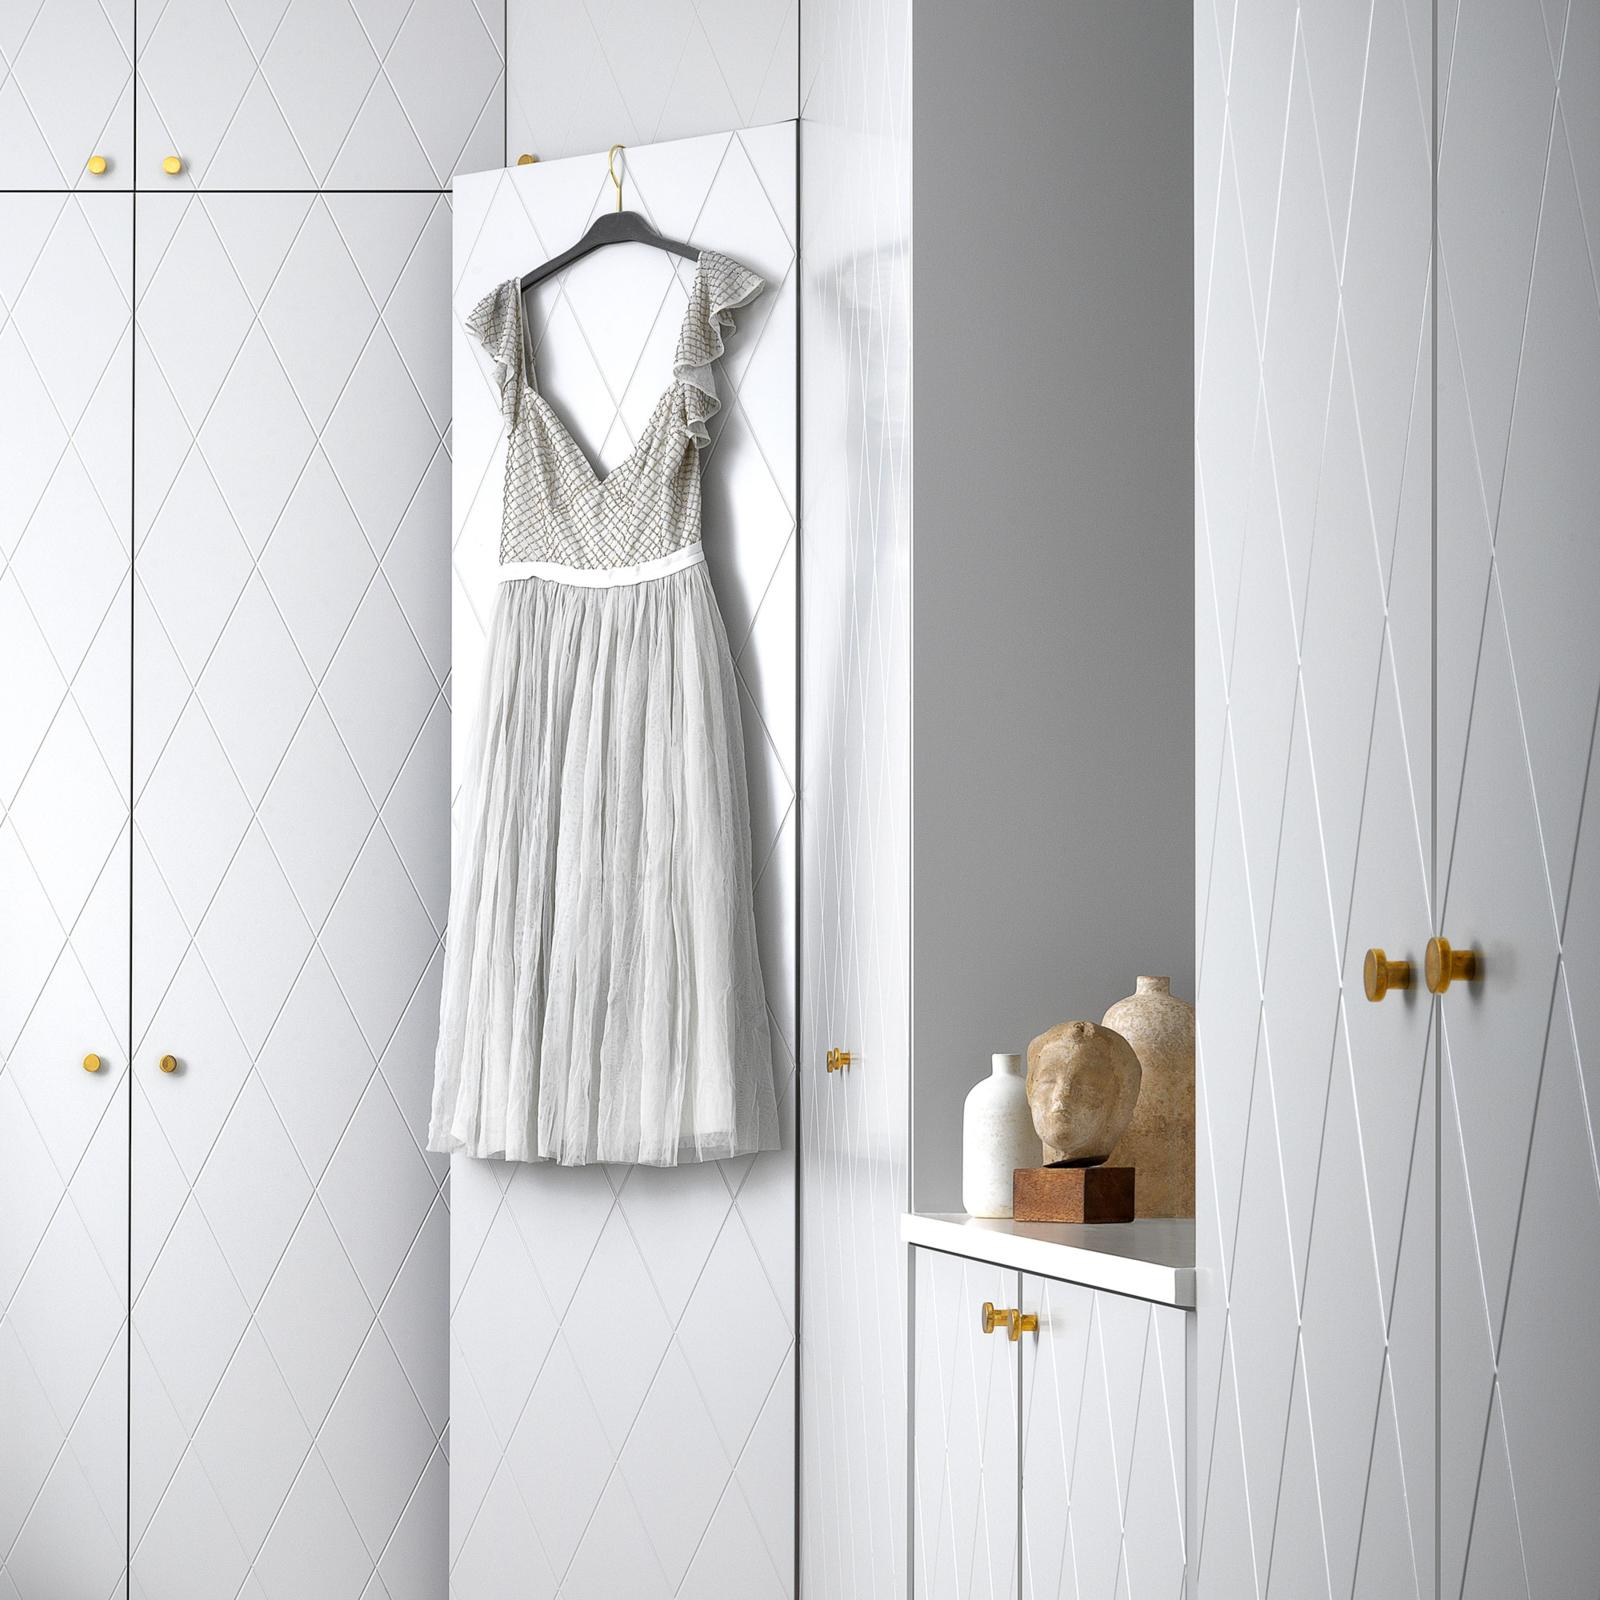 Custom built walk in closet in pale grey from Superfront, with Pax frame from Ikea